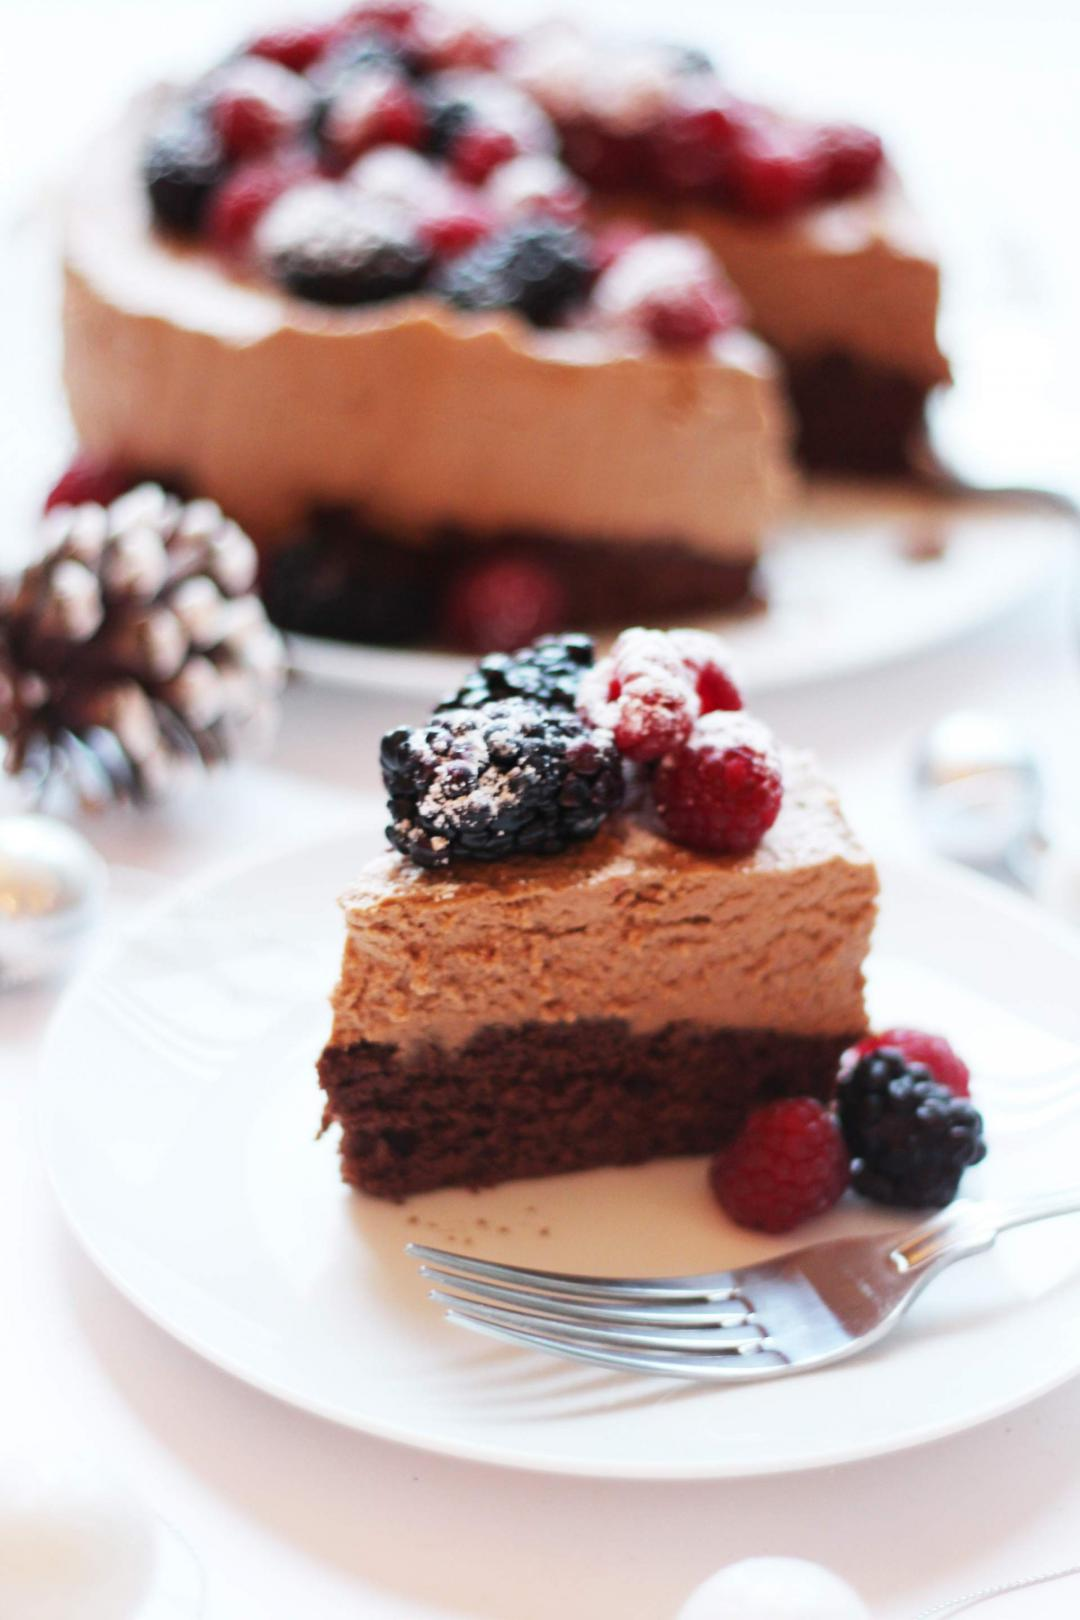 lindt-chocolate-mousse-cake-alternative-christmas-cake-easy-recipe